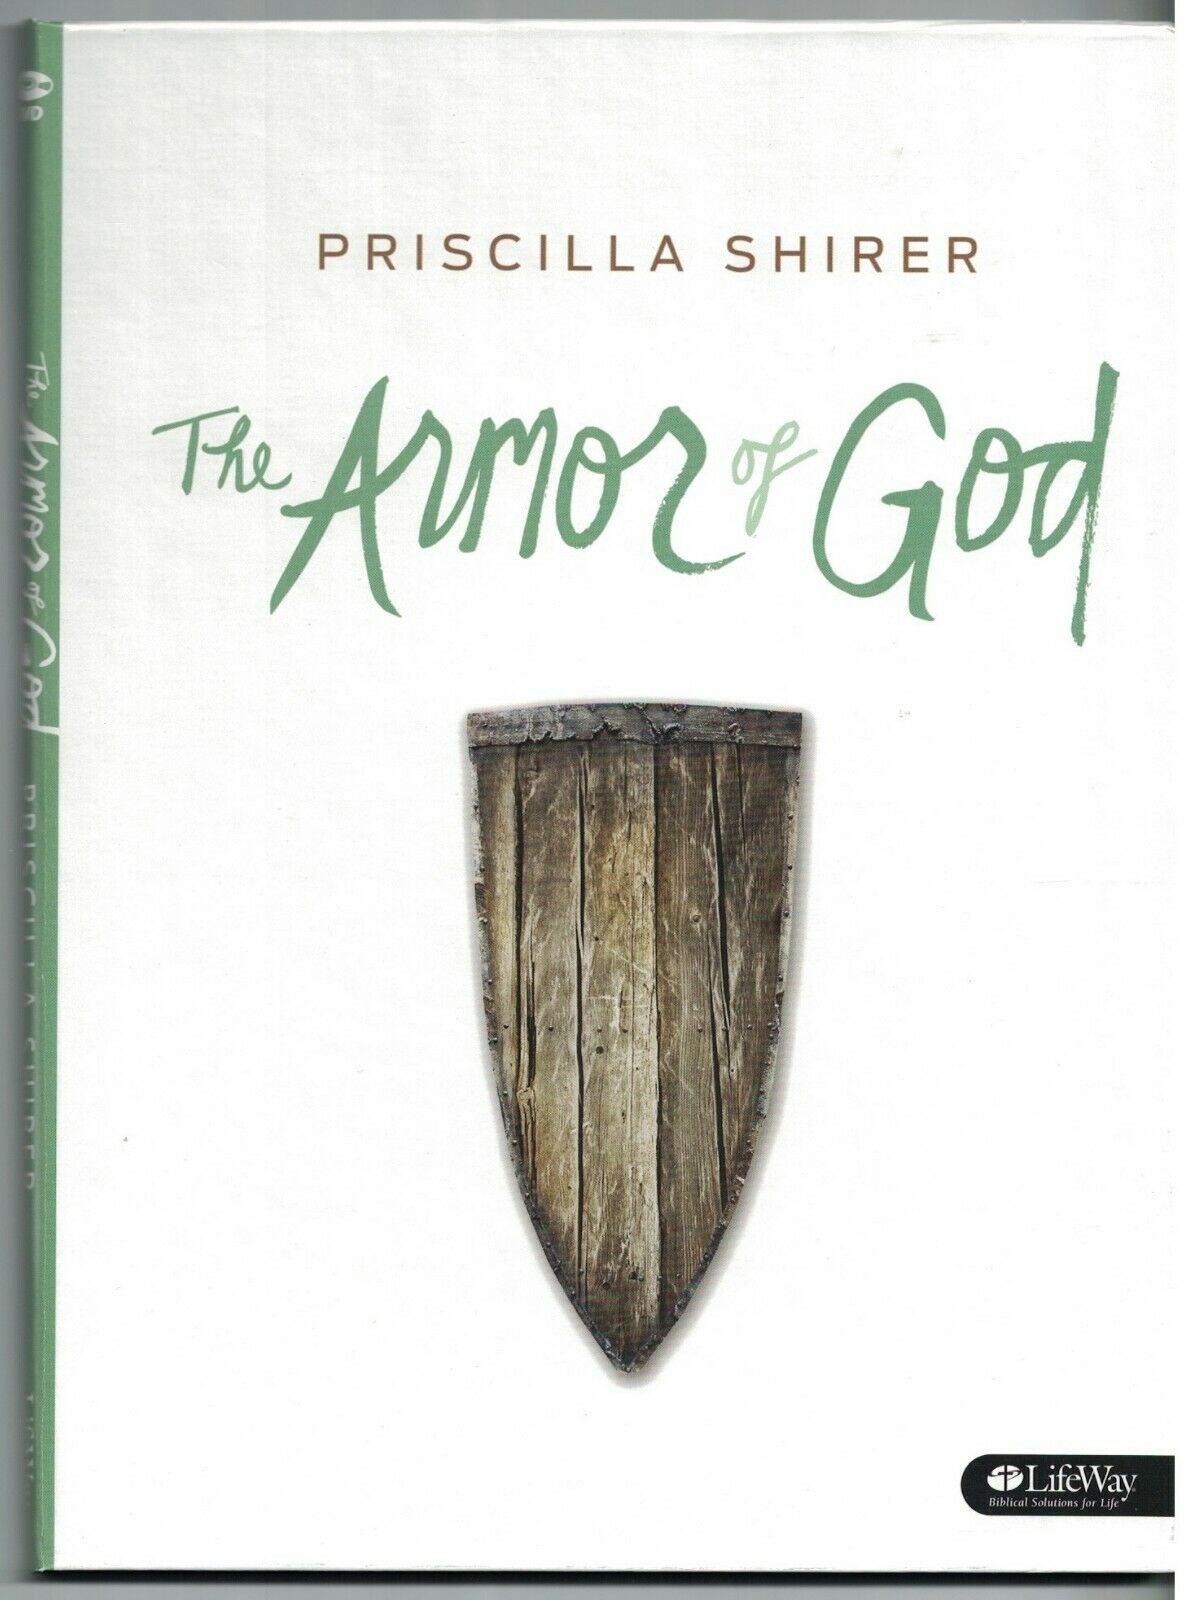 Priscilla Shirer The Armor Of God Bible Study DVD Set - $45.00